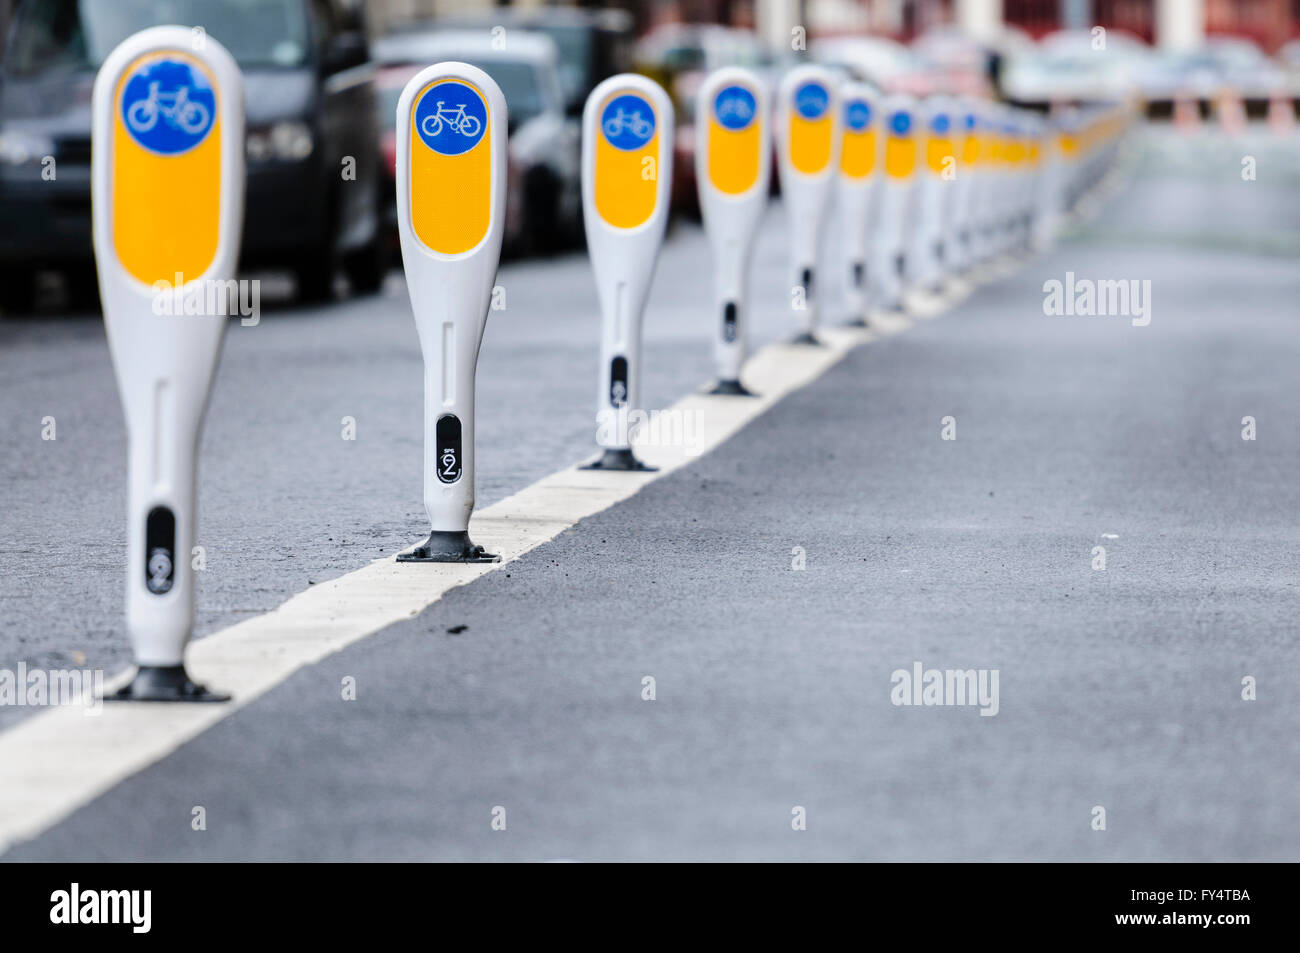 Row of bollards separating a cycle lane from motor vehicles. - Stock Image